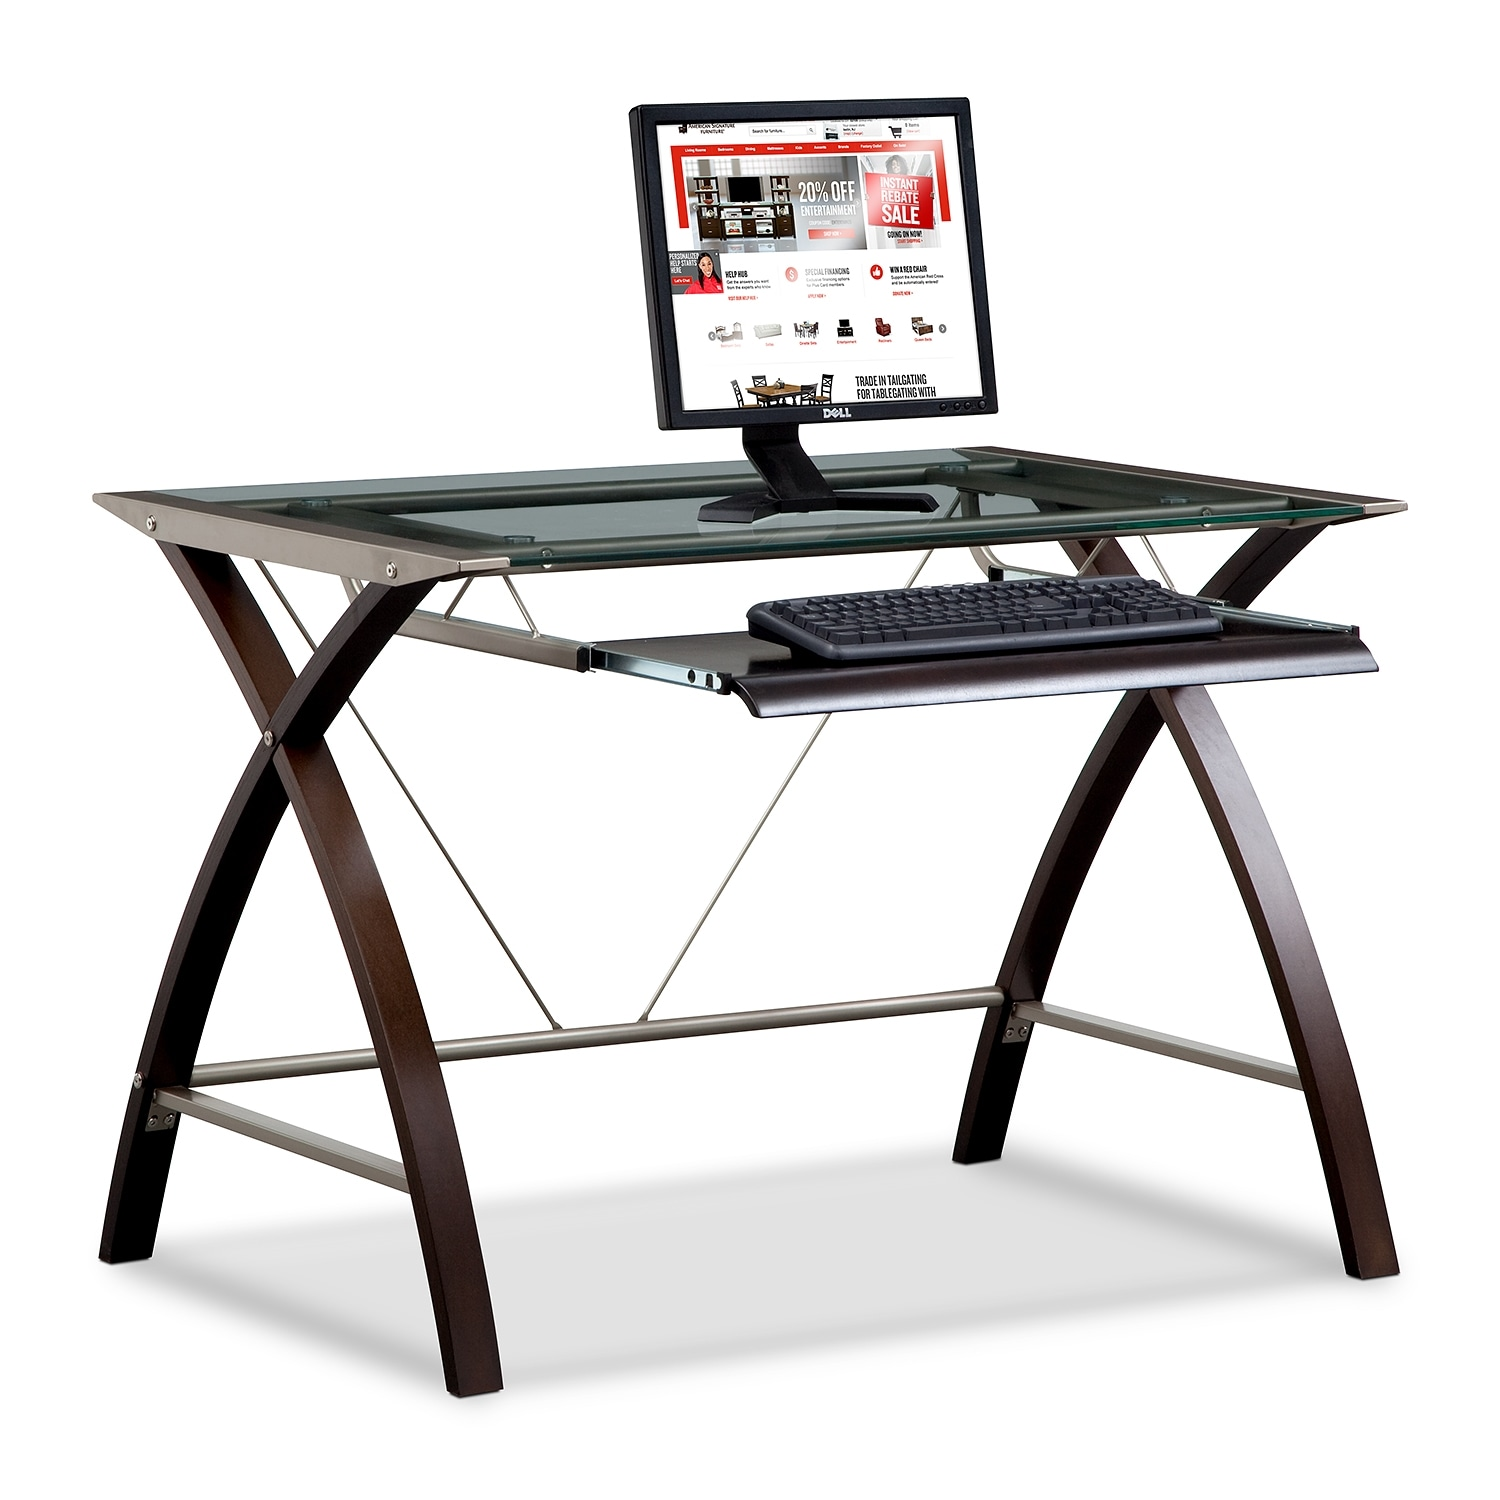 Home Office Furniture - Orion Computer Desk with Keyboard Tray